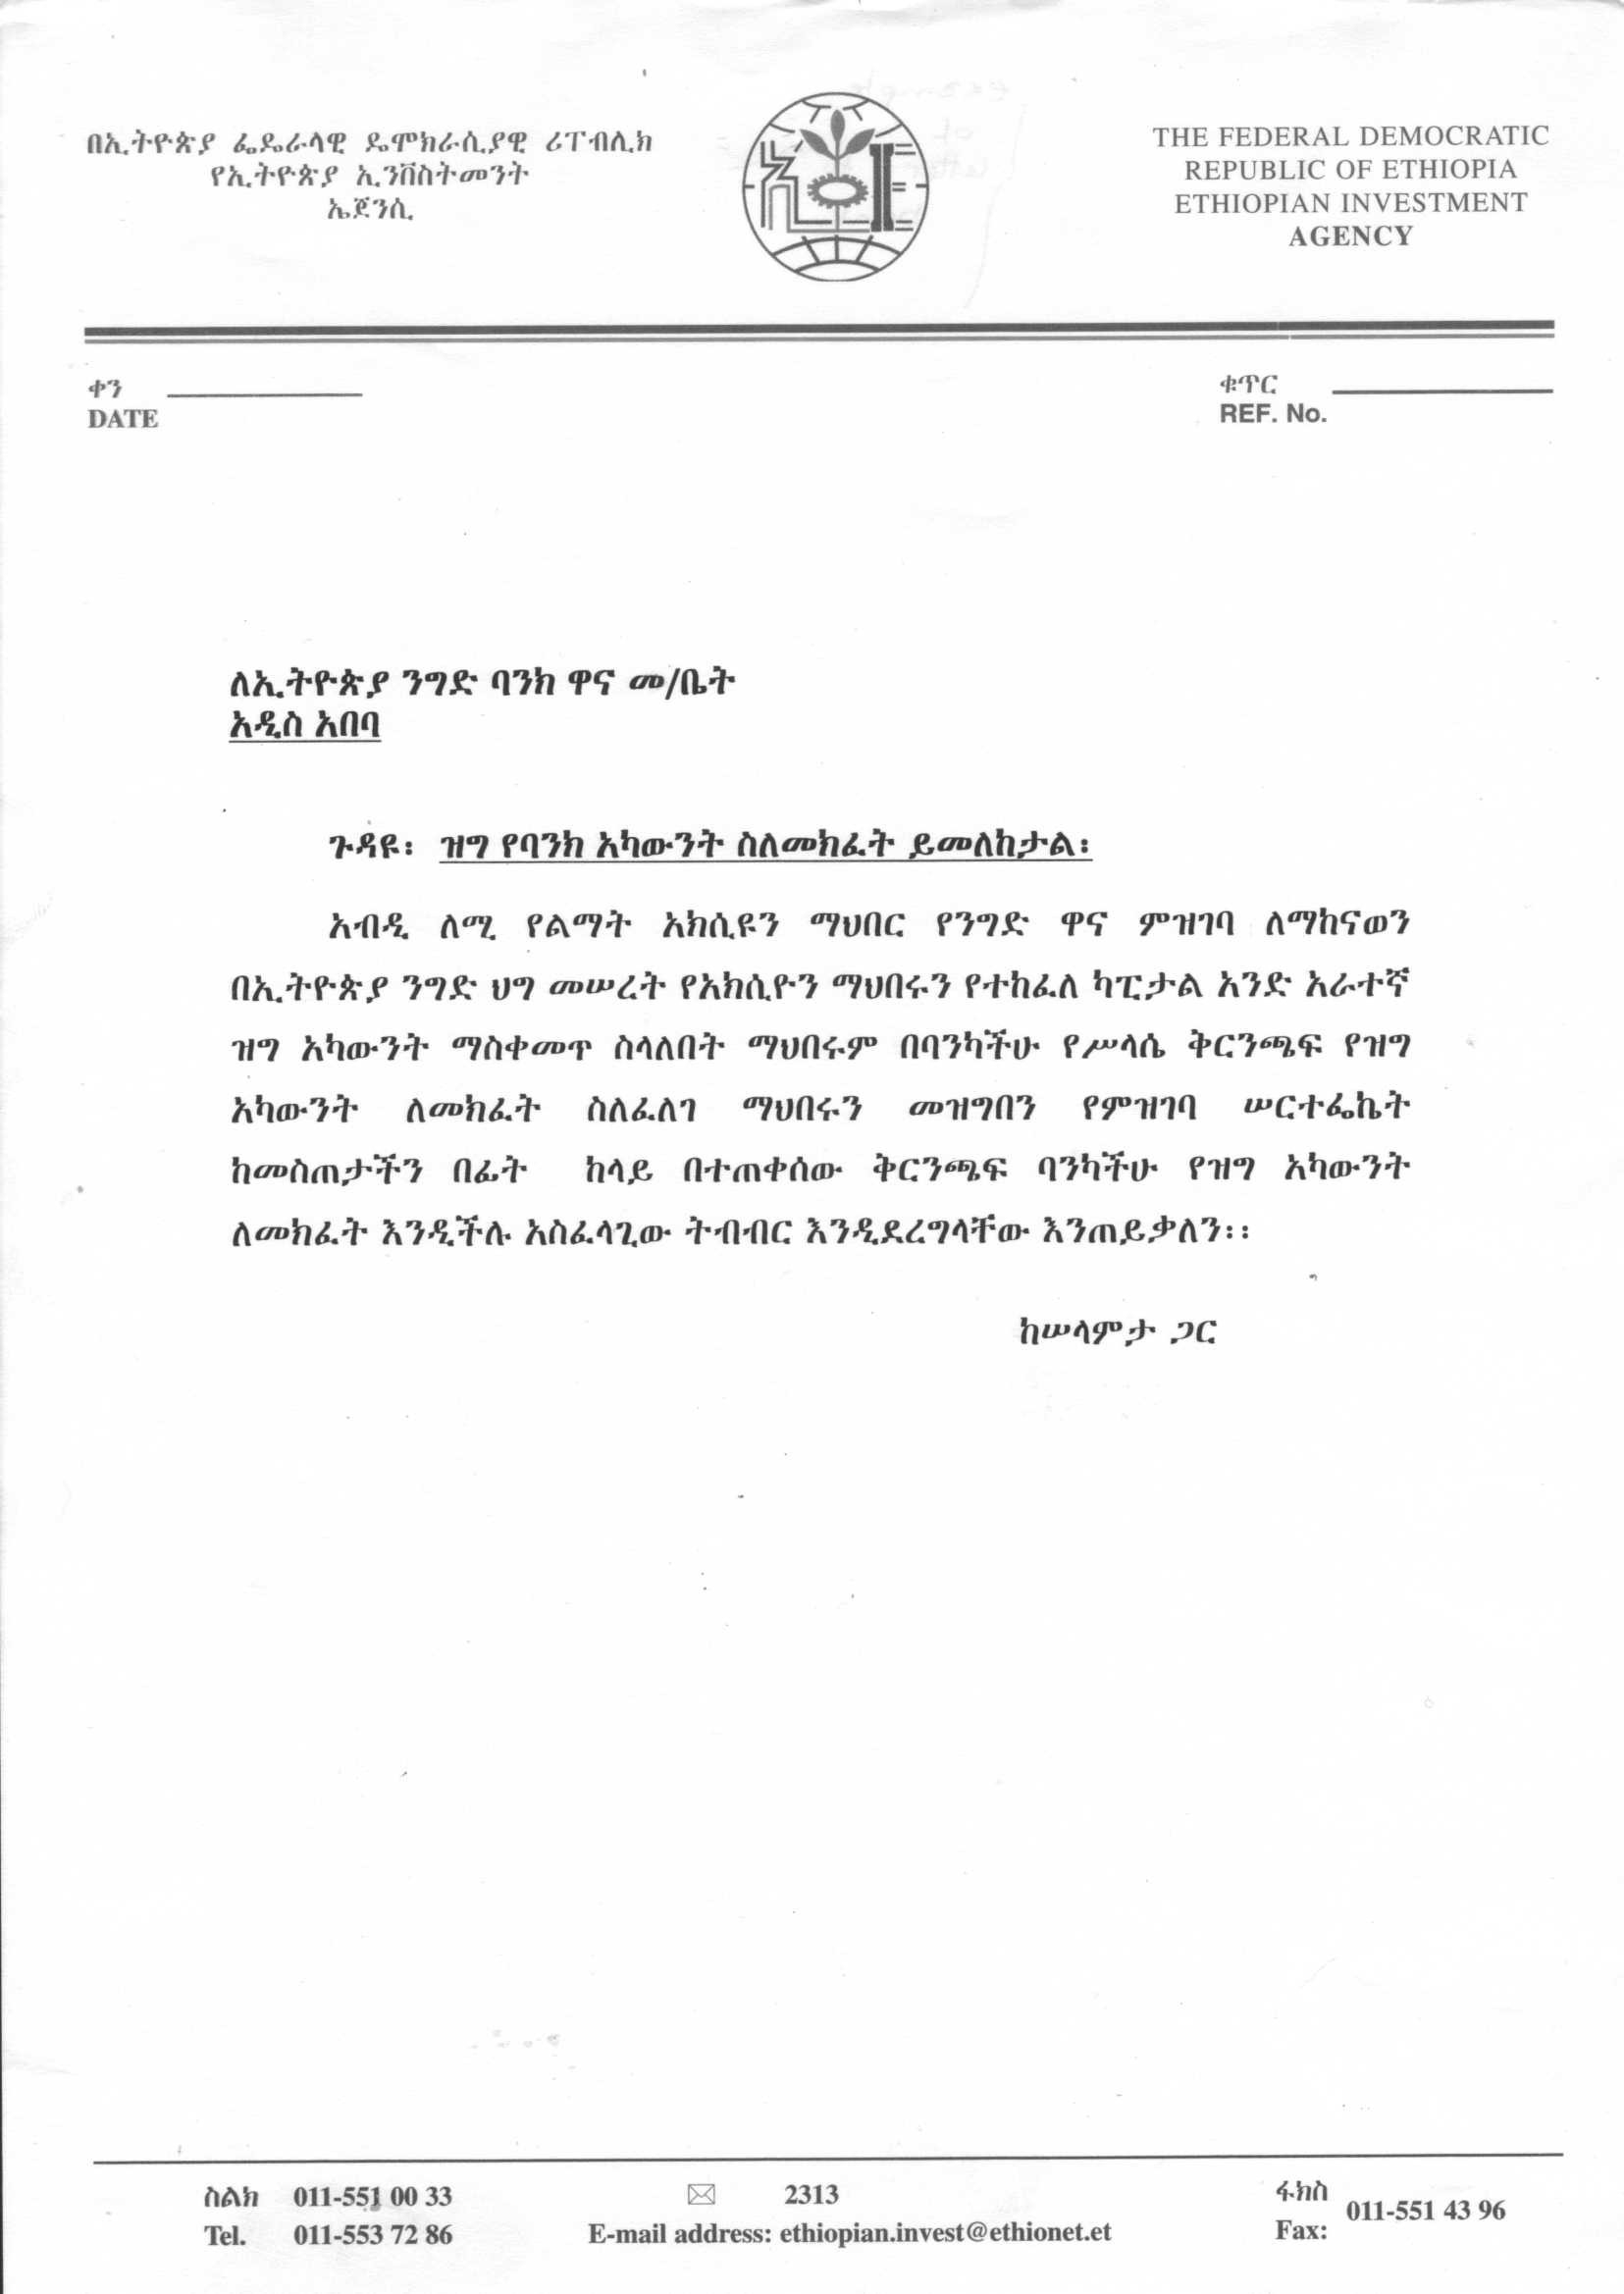 Certificate Of Insurance Request Letter Template - Archaicawful Certificate Insurance Request Letter Template